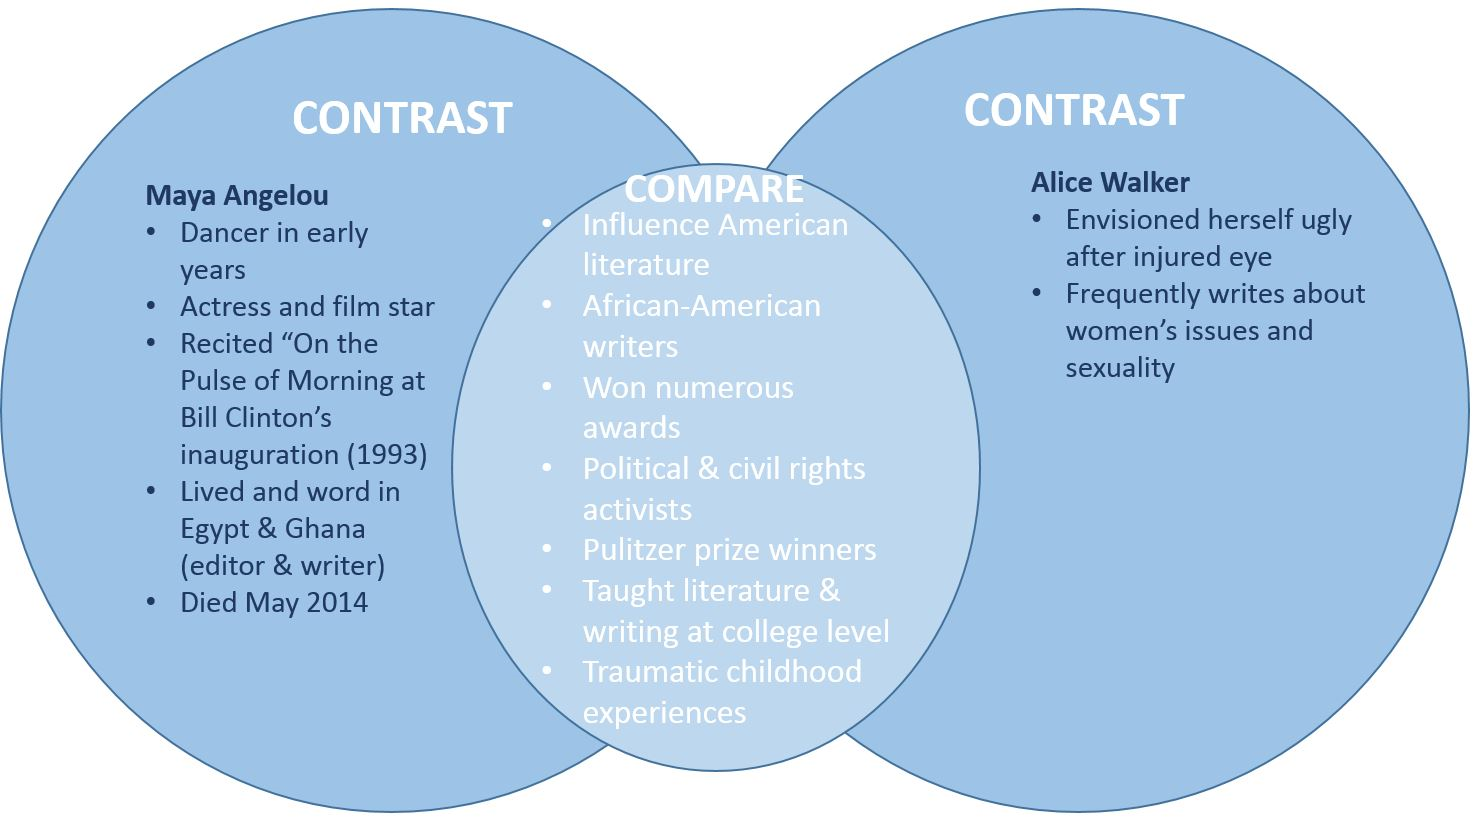 comparison and contrast essay on sisters If you'd like your students to see others' strengths and those well as their own, try this writing lesson by focusing on the positive, children gain greater understanding and empathy at the same time they are learning the common core standard of how to write a compare and contrast.